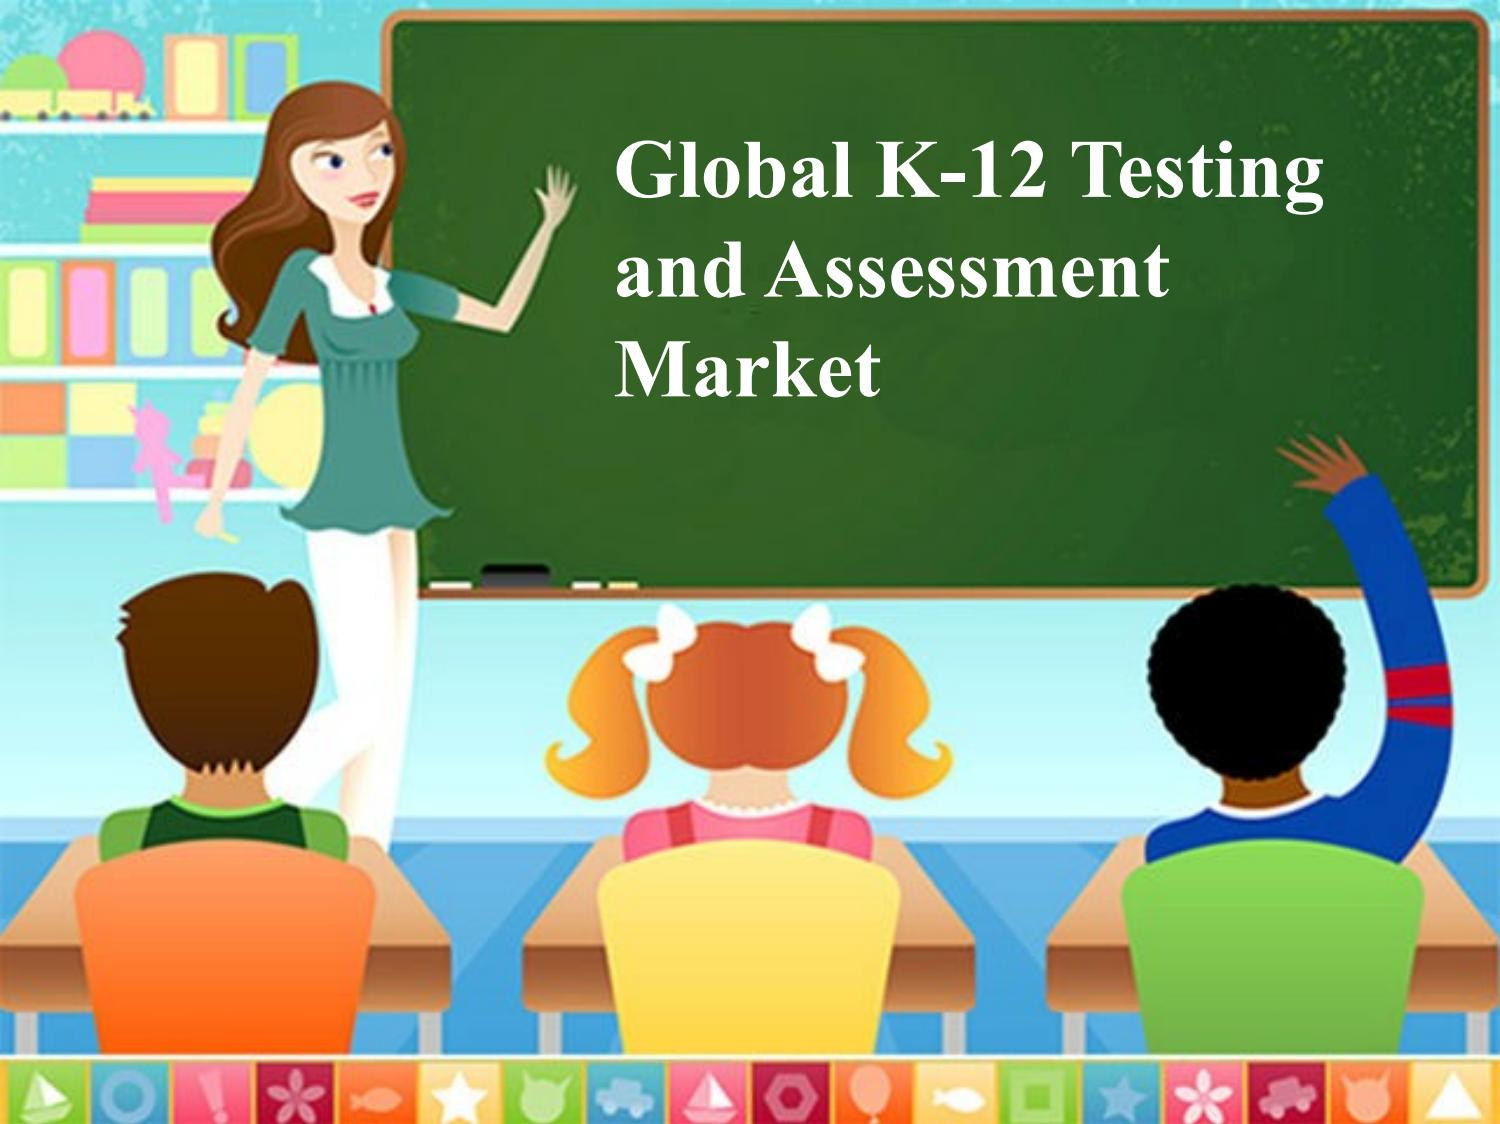 K-12 Testing and Assessment Market: Intense Competition but High Growth & Extreme Valuation